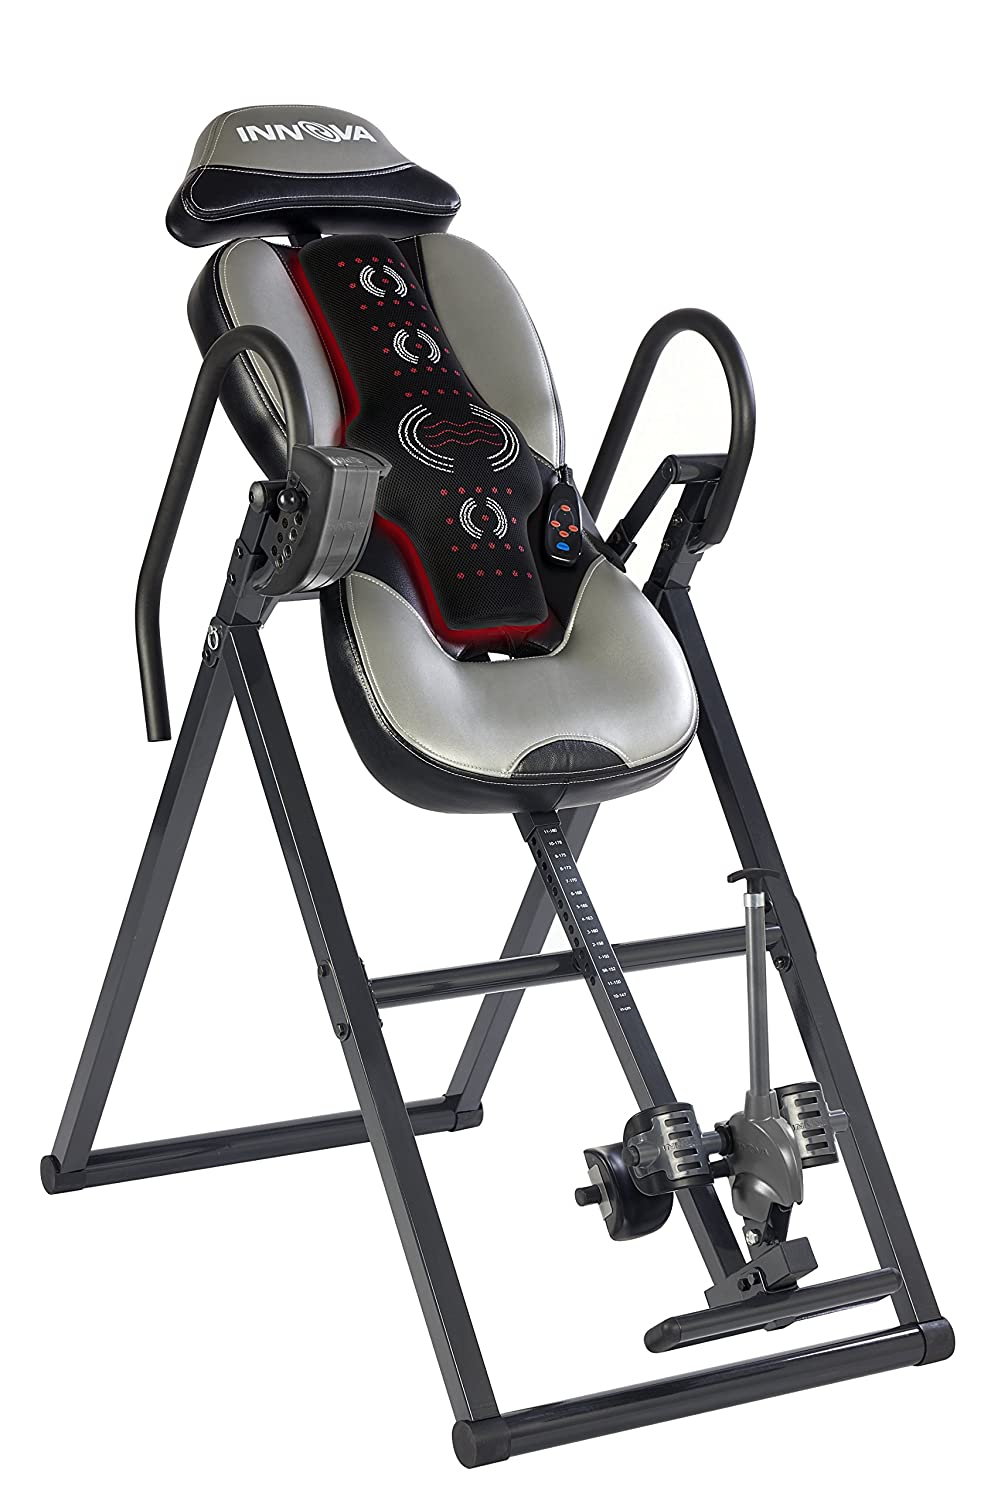 Innova inversion table review